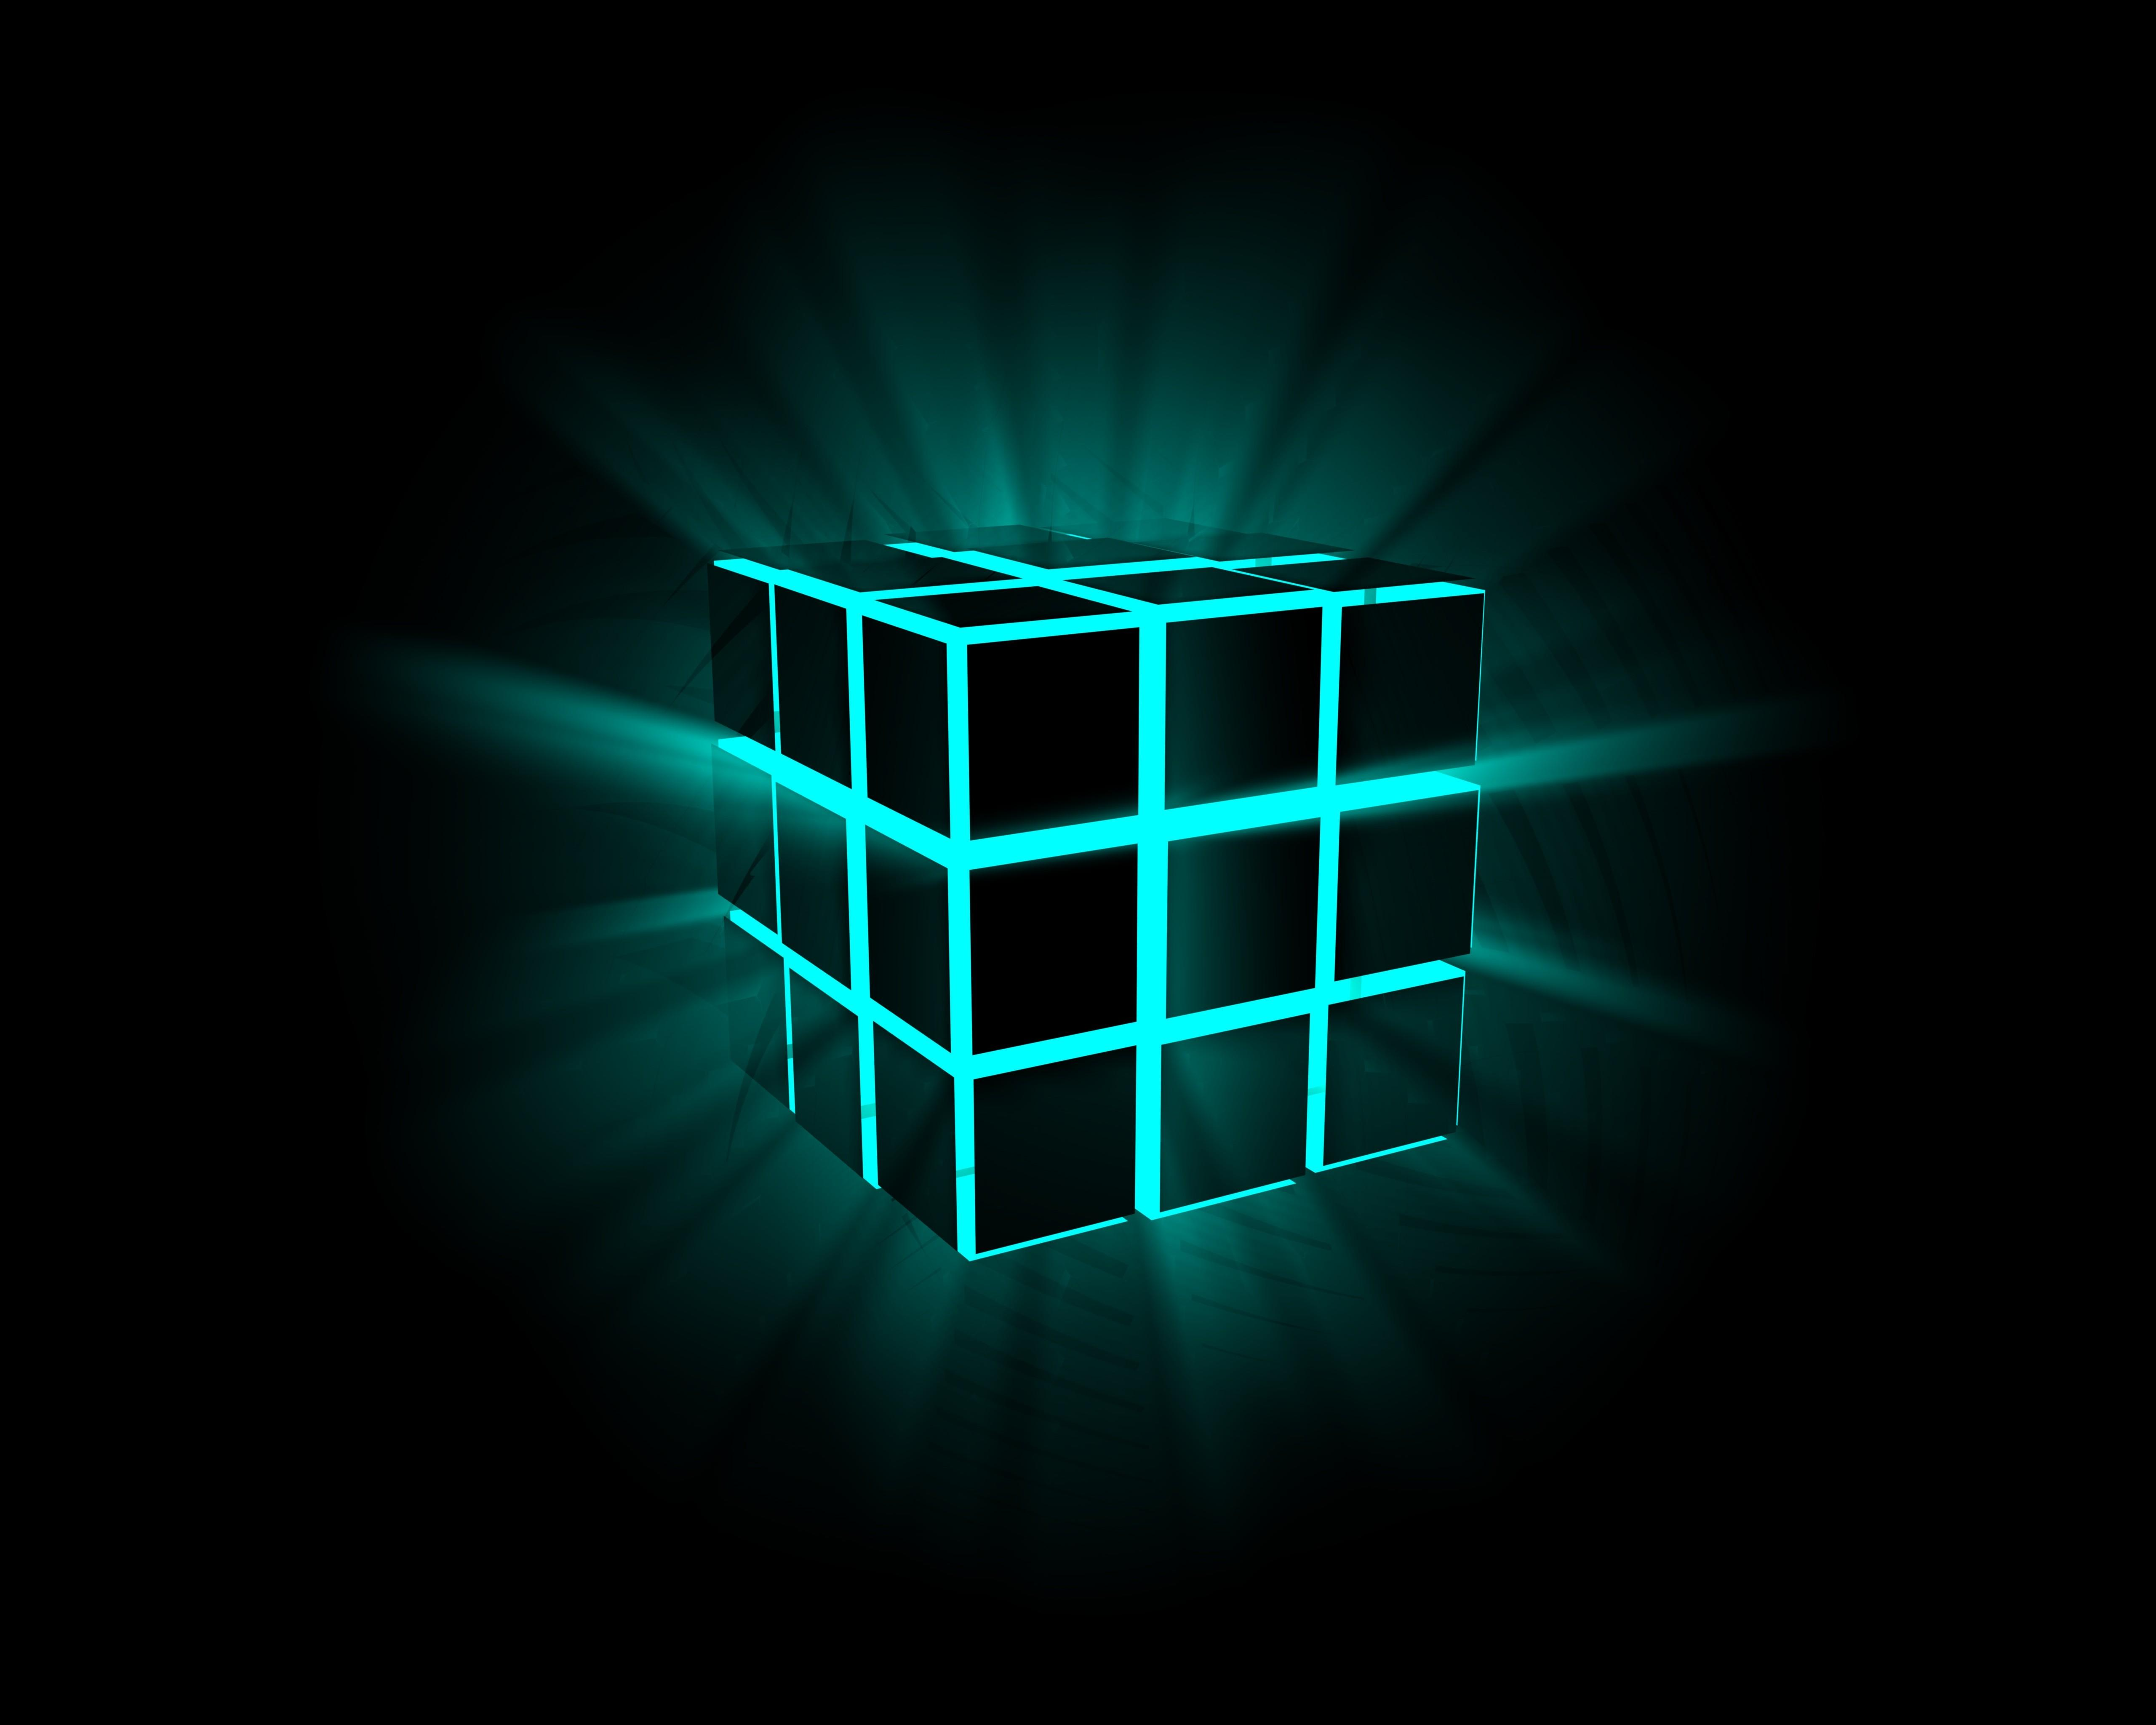 Rubiks Cube Wallpapers